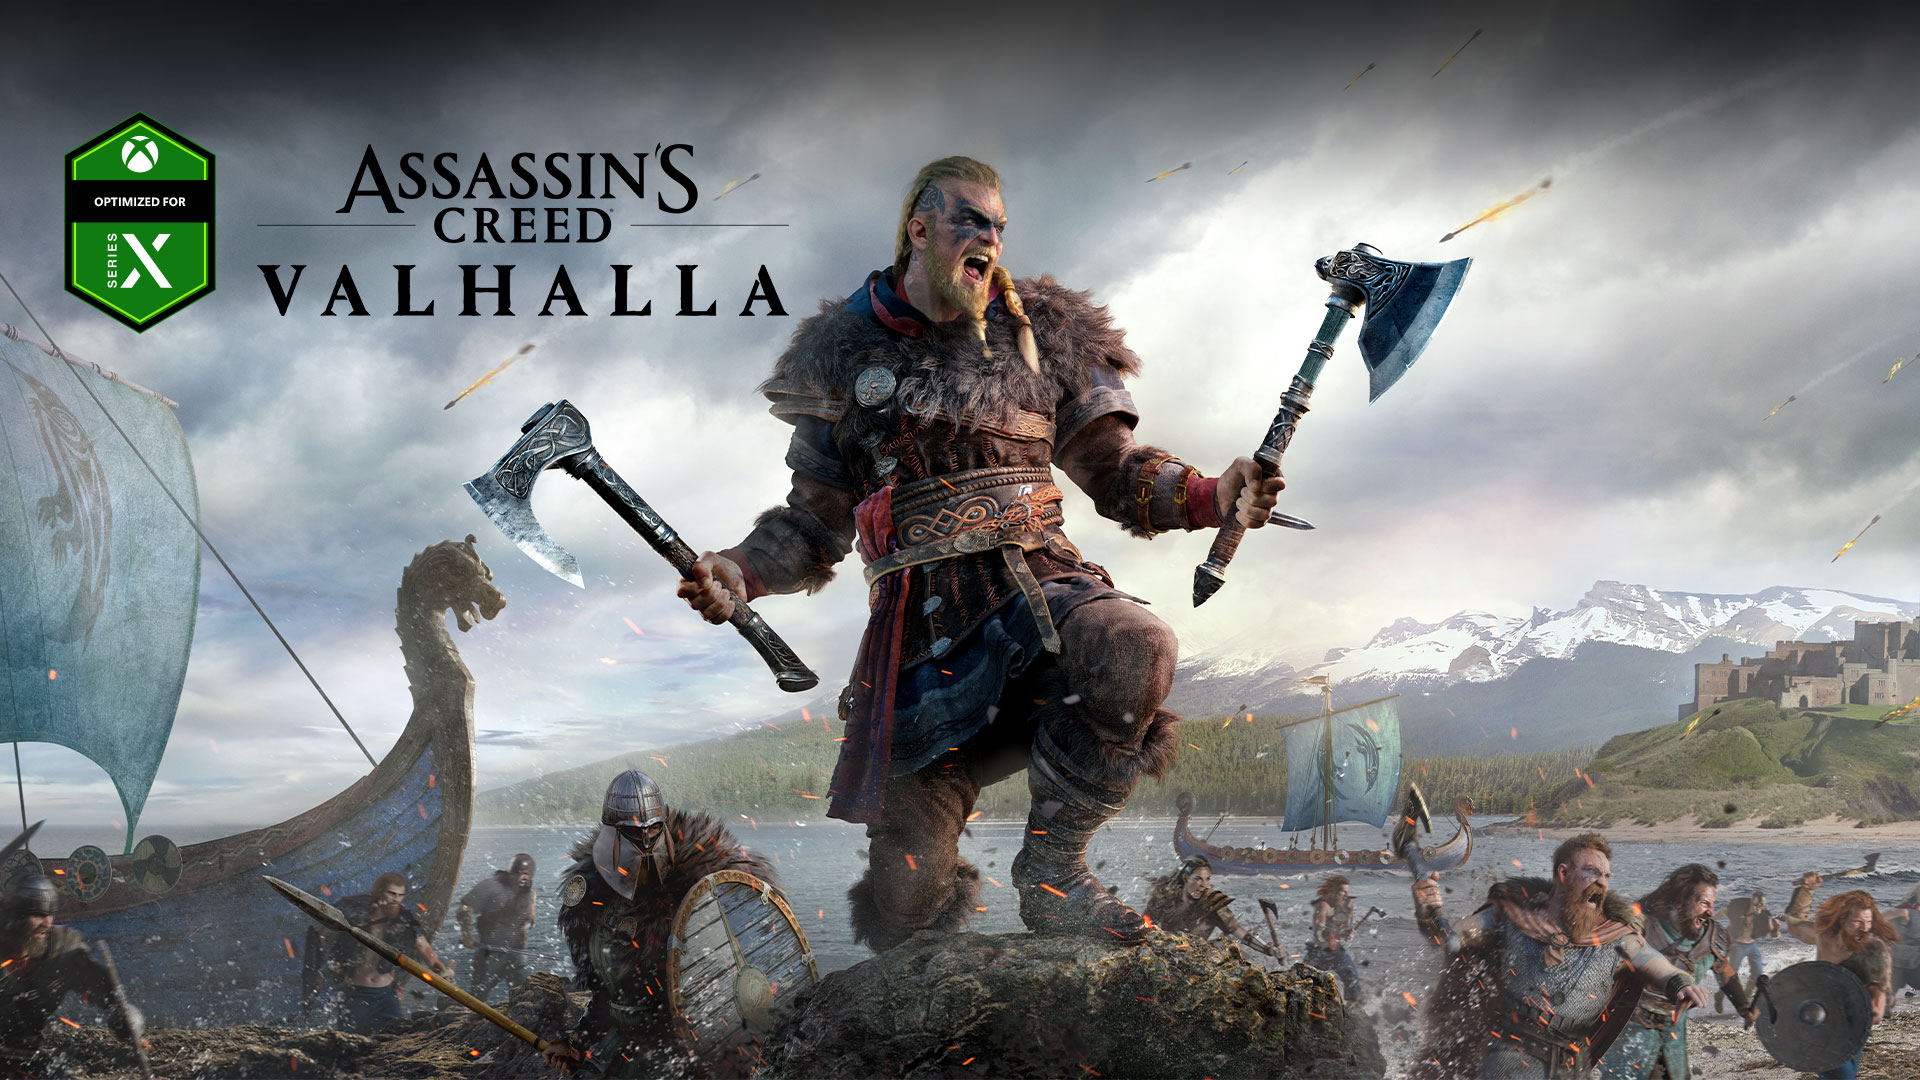 Optimized for Xbox Series X logo, Assassin's Creed Valhalla, character with two axes during battle